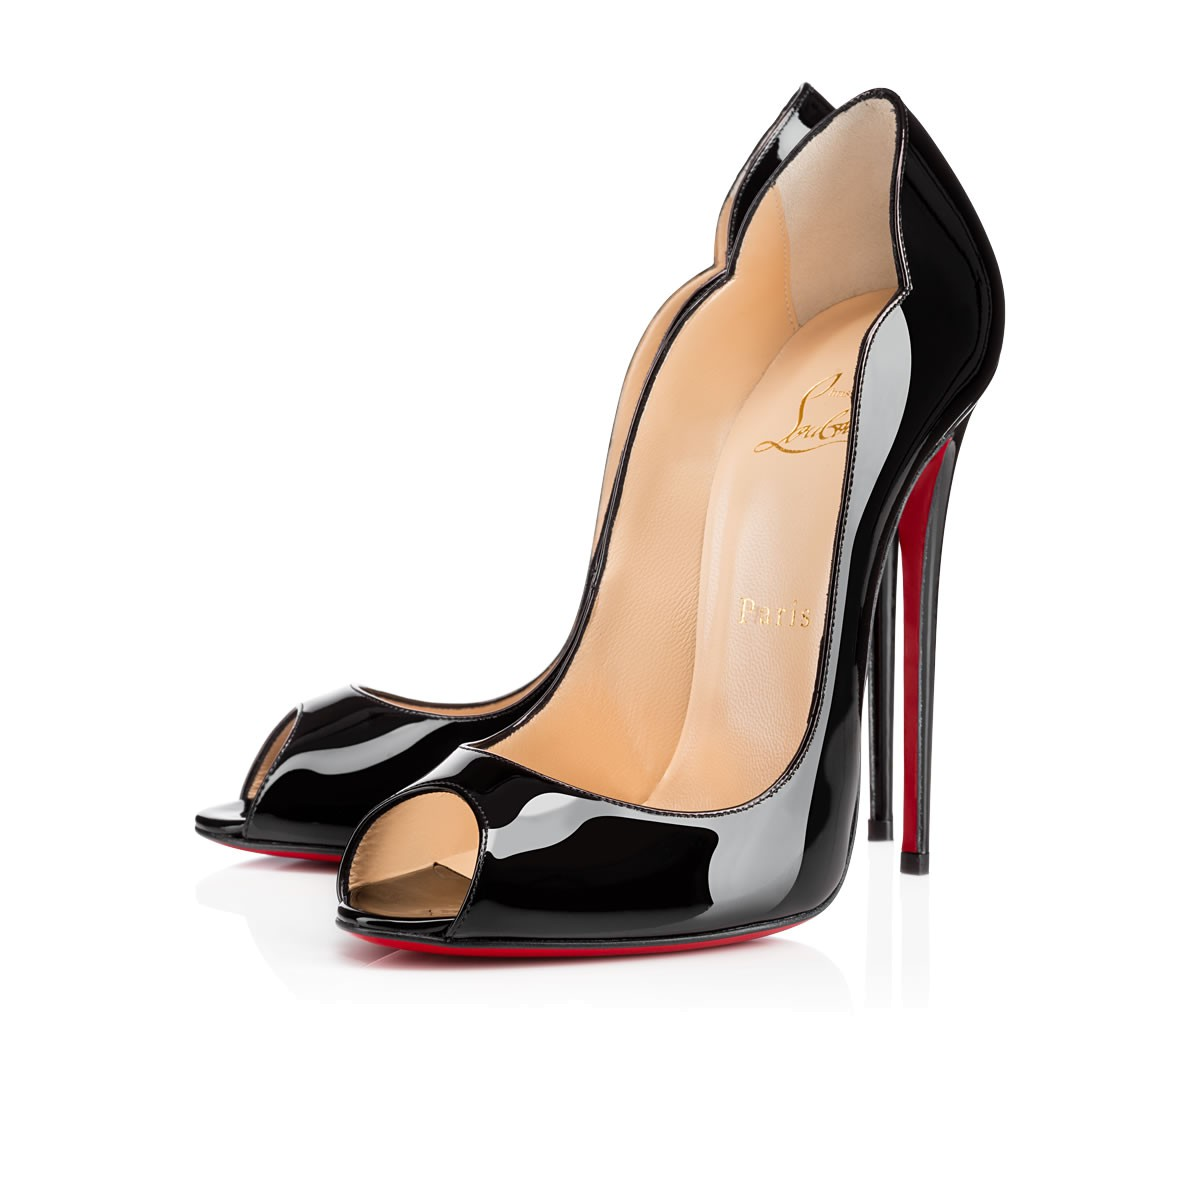 4d160b0412d7 ... CHRISTIAN LOUBOUTIN Hot Wave 130 Black Patent Leather - Women Shoes -